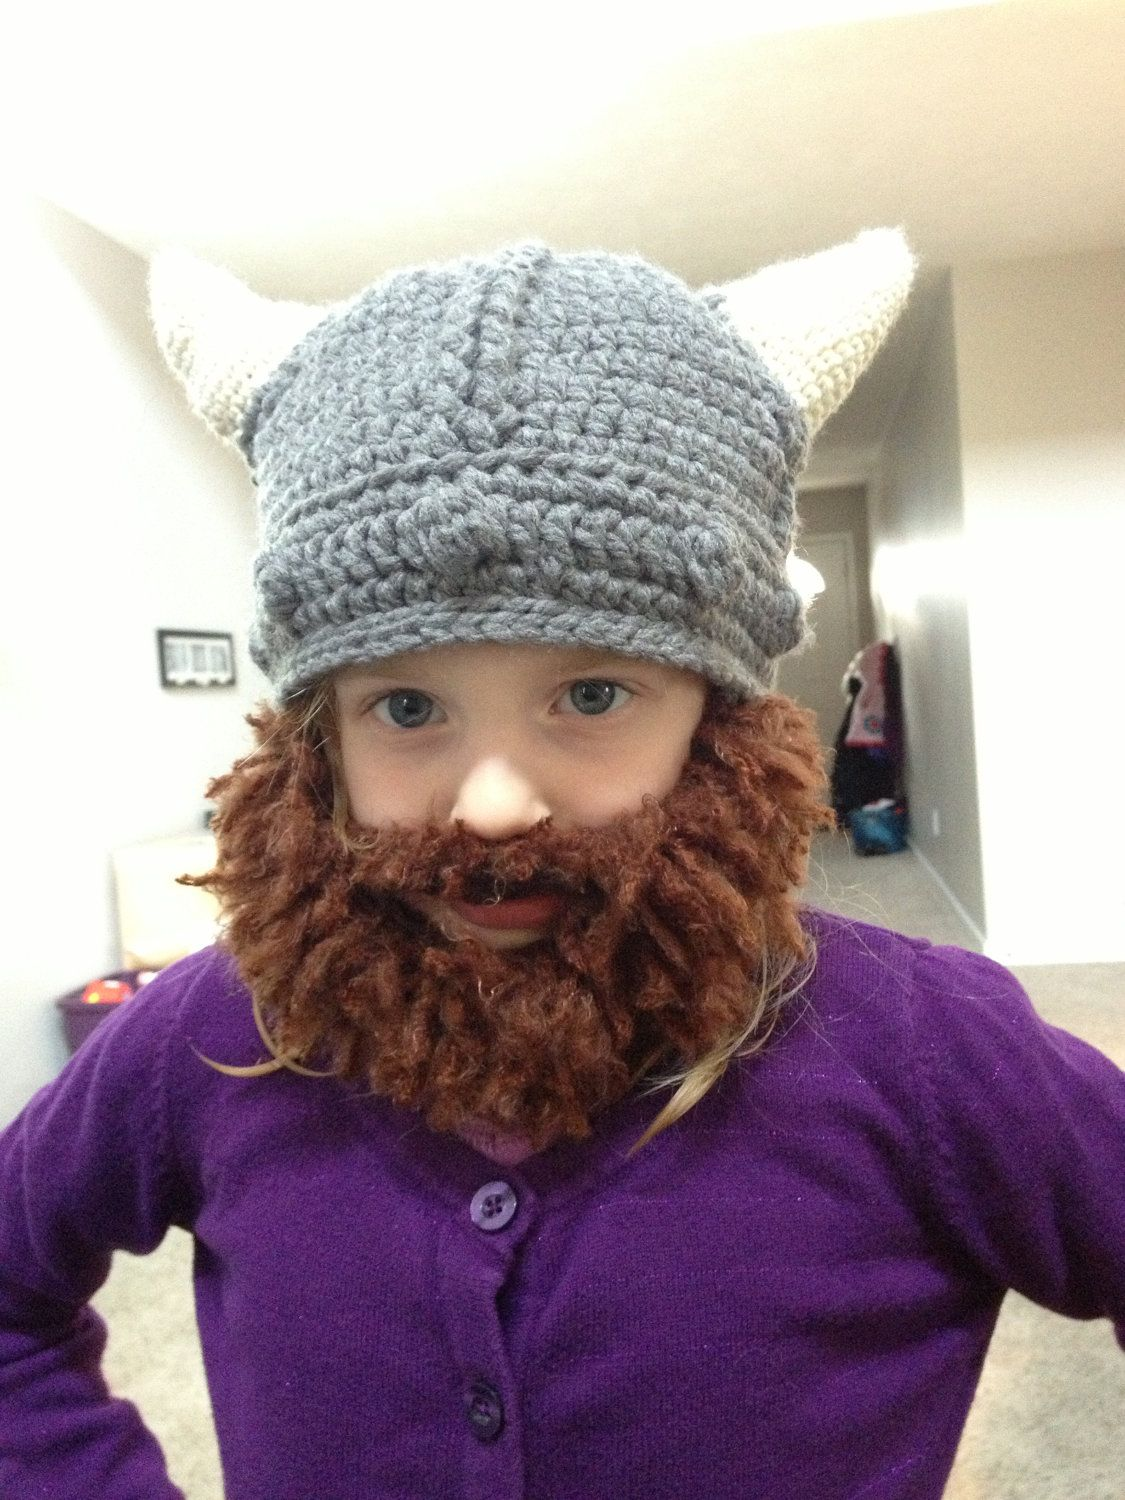 Fuzzy Beard Crochet Viking hat.  bef968d95f9